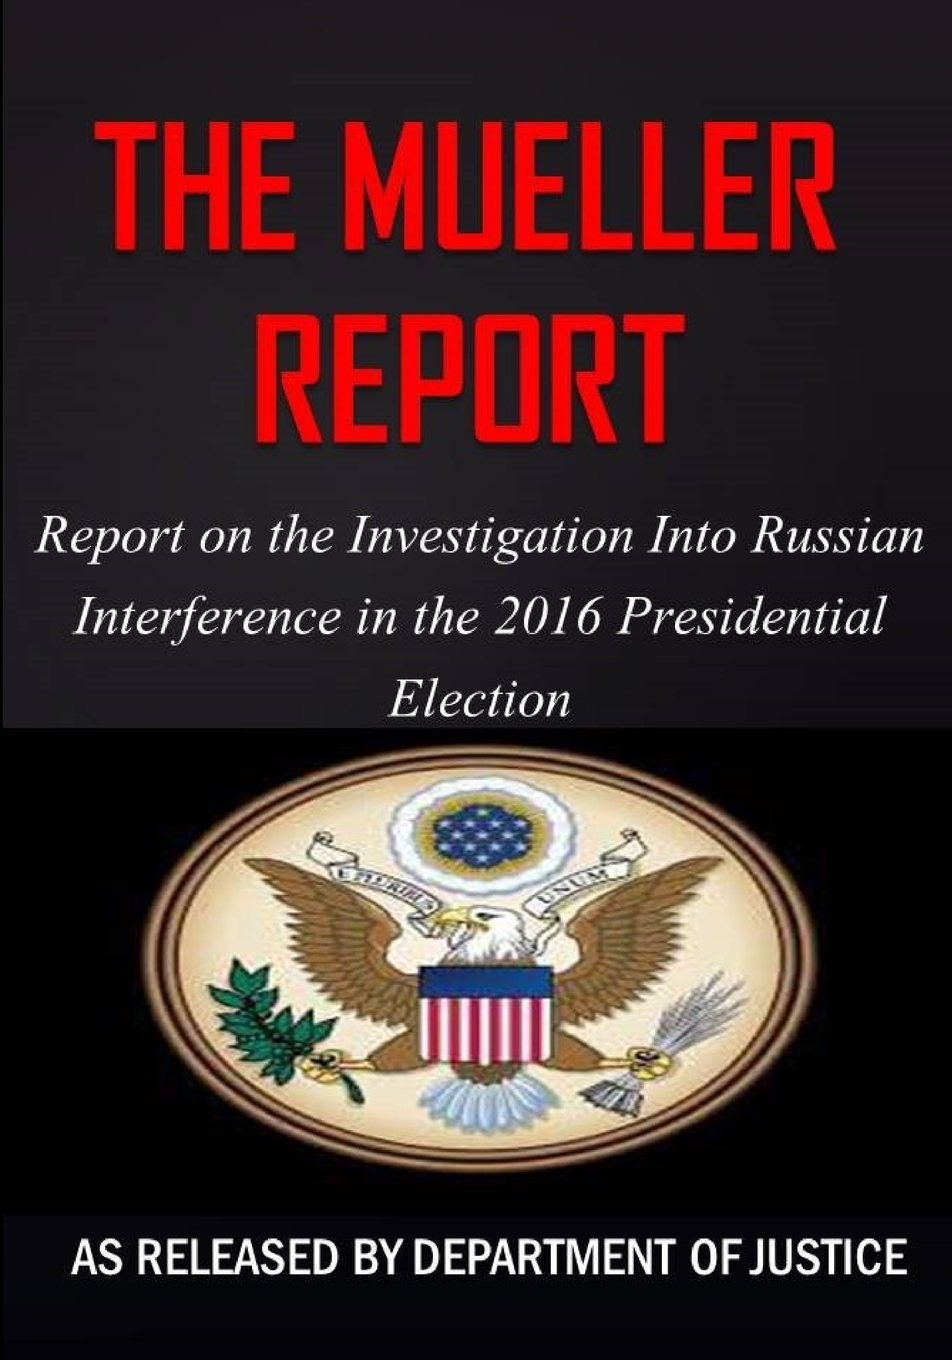 Robert S Mueller. The Mueller Report. Report on the Investigation into Russian Interference in the 2016 Presidential Election